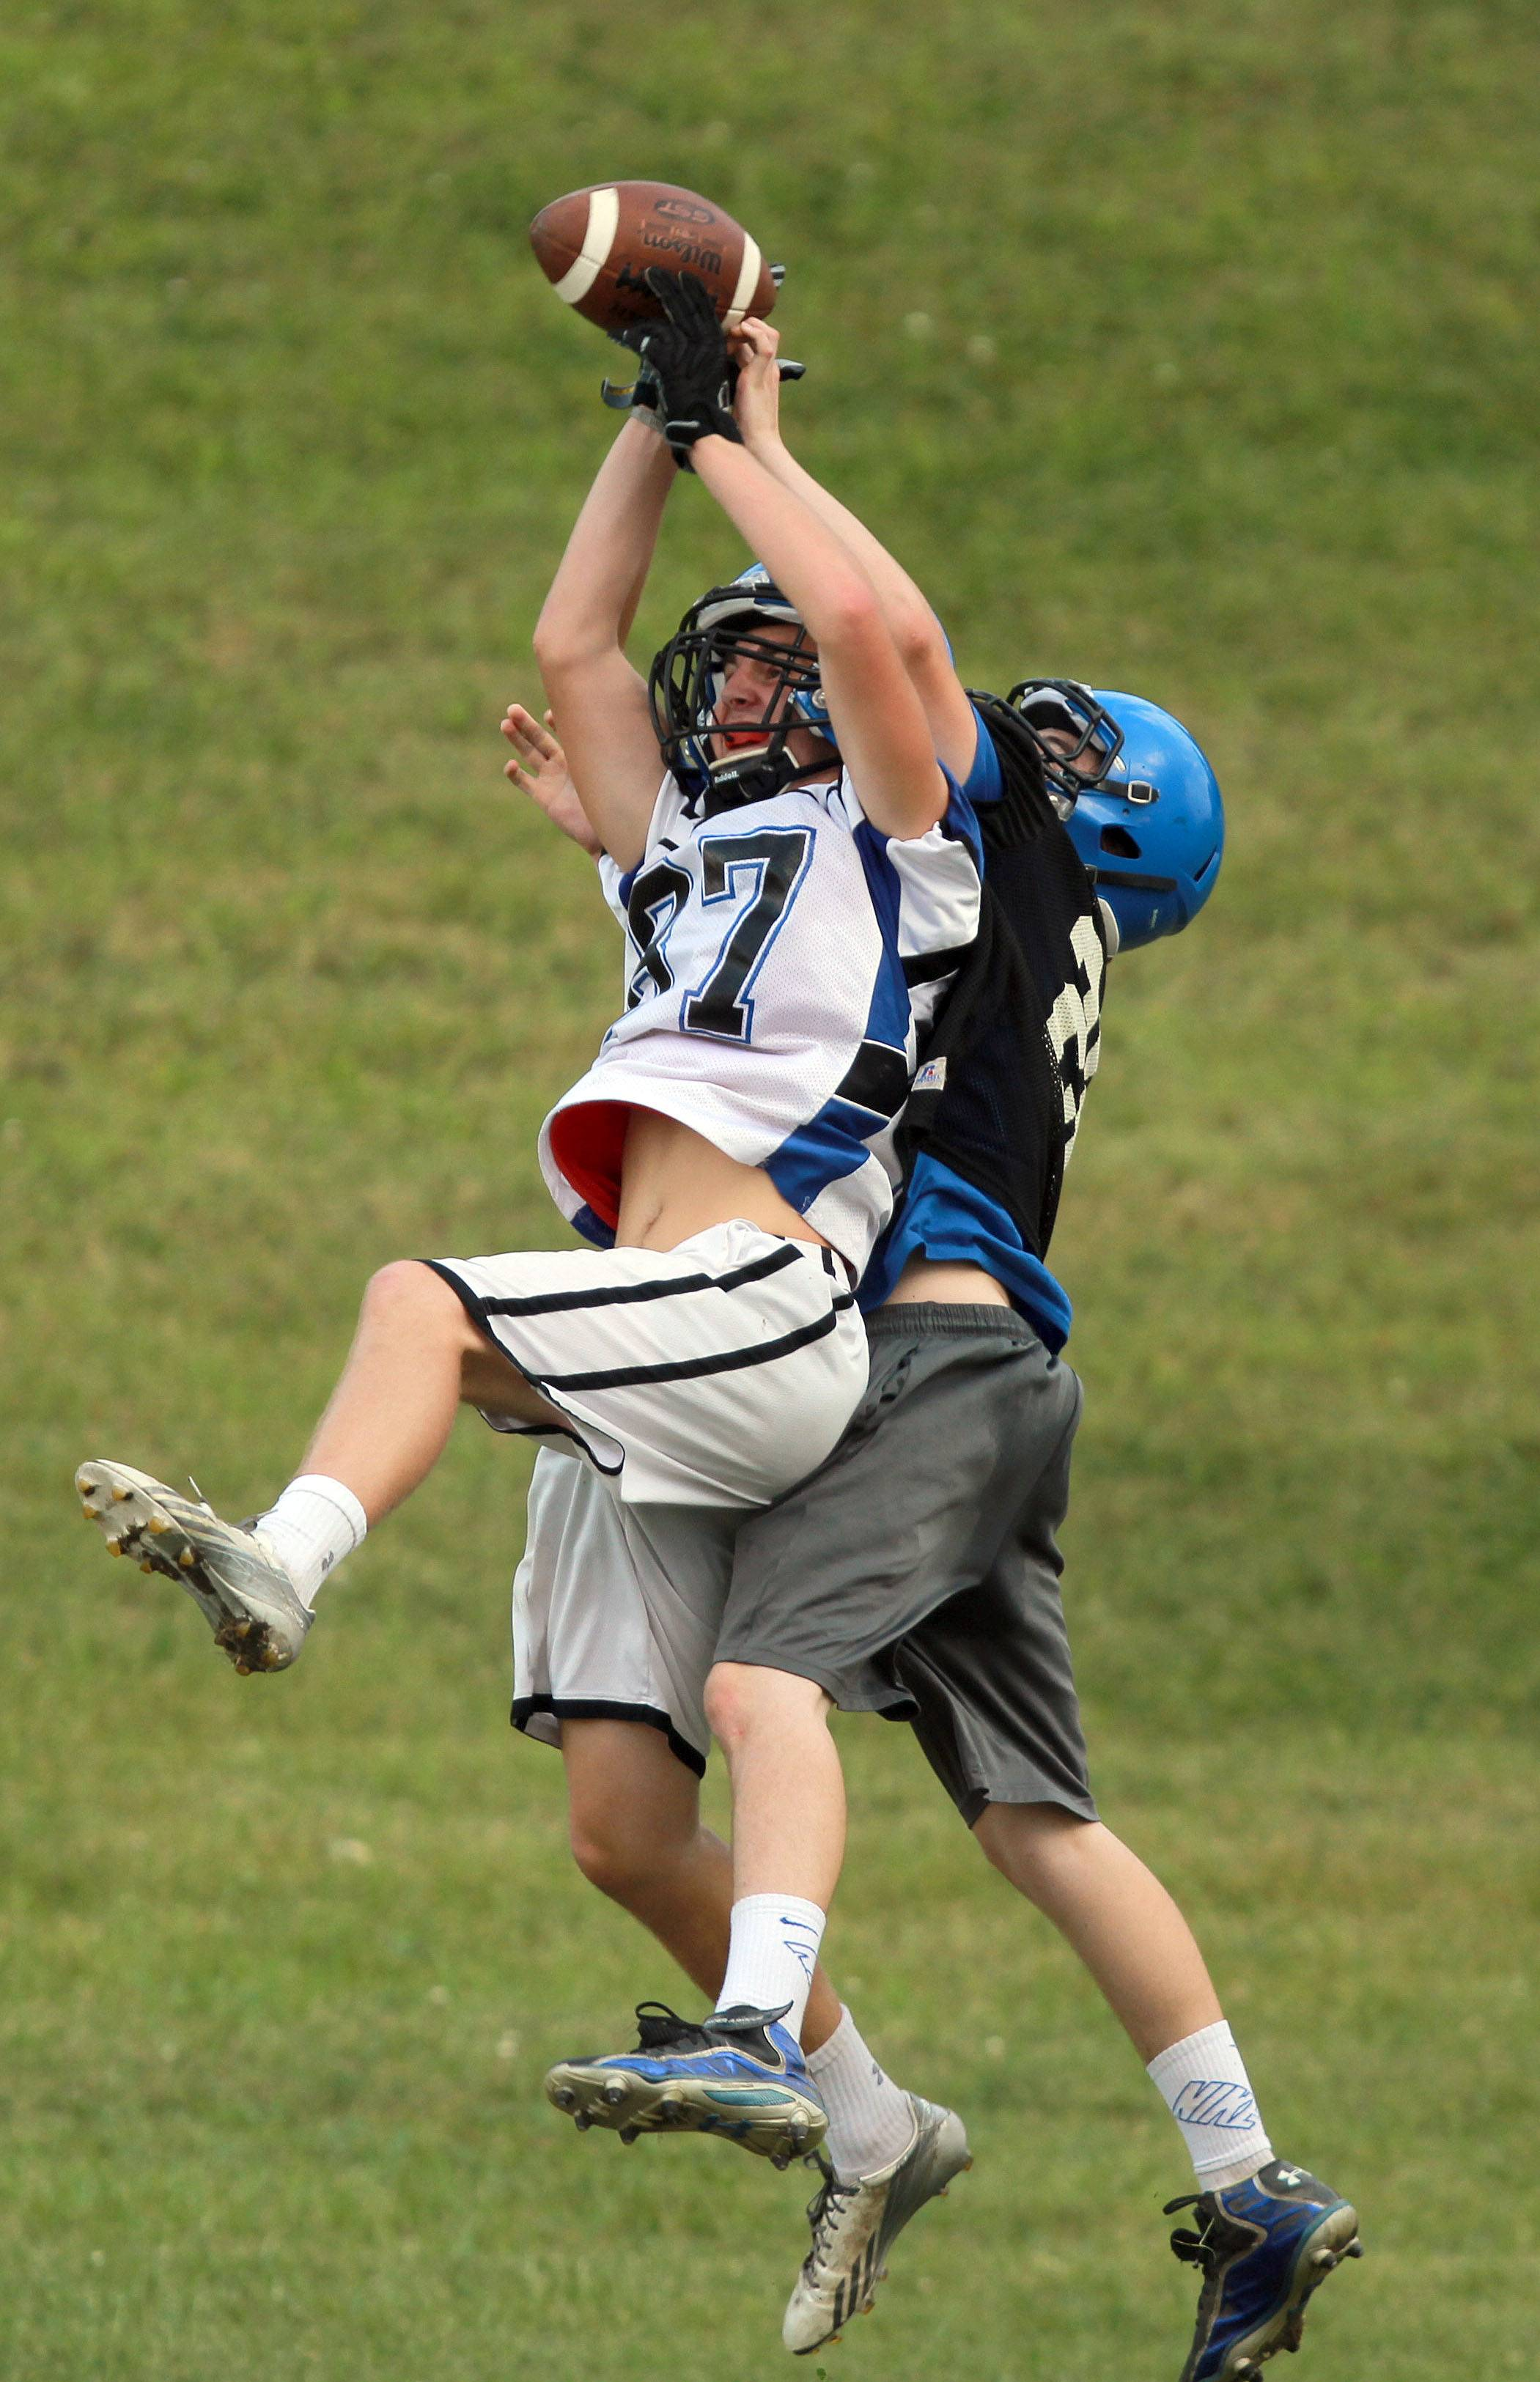 Steve Lundy/slundy@dailyherald.comPat Rigby, left, goes up for a pass with Jeremy Brown during football practice Monday at Lake Zurich.